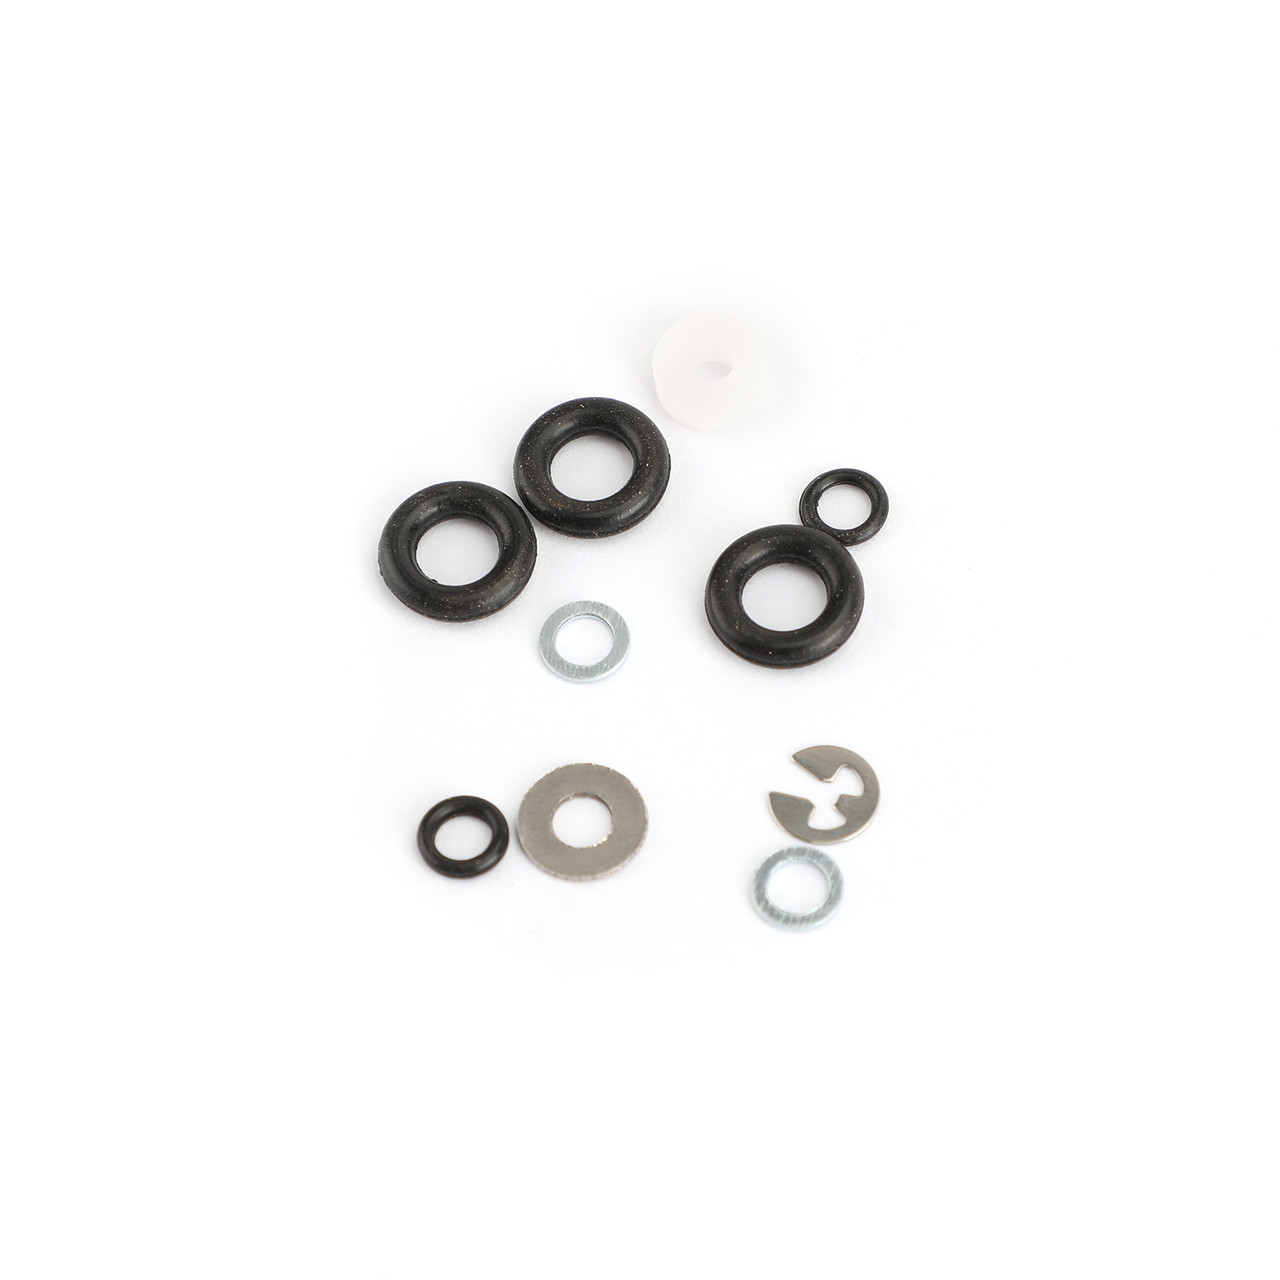 Carburetor Repair Carb Rebuild kit For Yamaha YFM400 YFM 400 Big Bear 400 00-12